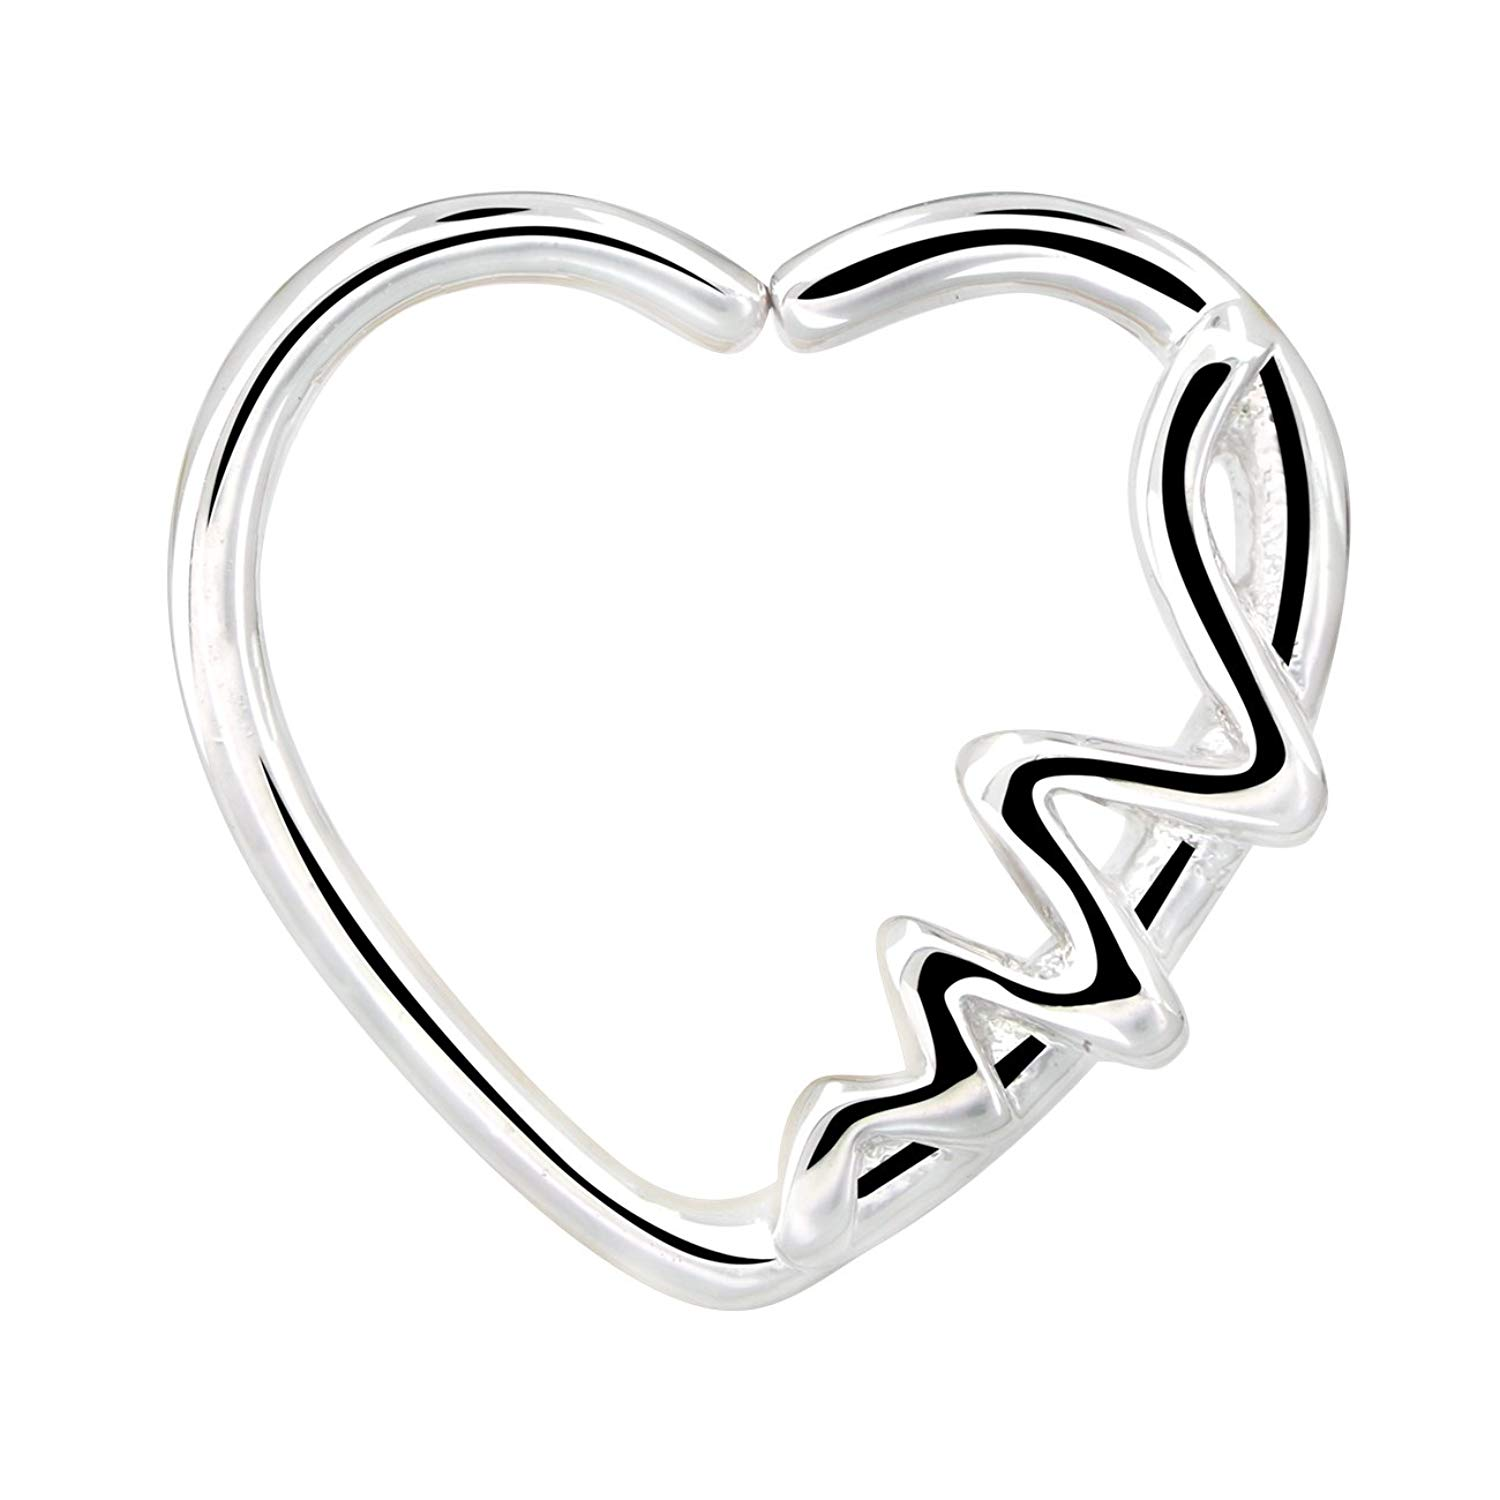 Get Quotations Oufer Body Piercing Jewelry Heart Shaped Waves Left Closure Daith Cartilag Tragus Helix Earring 16gauge